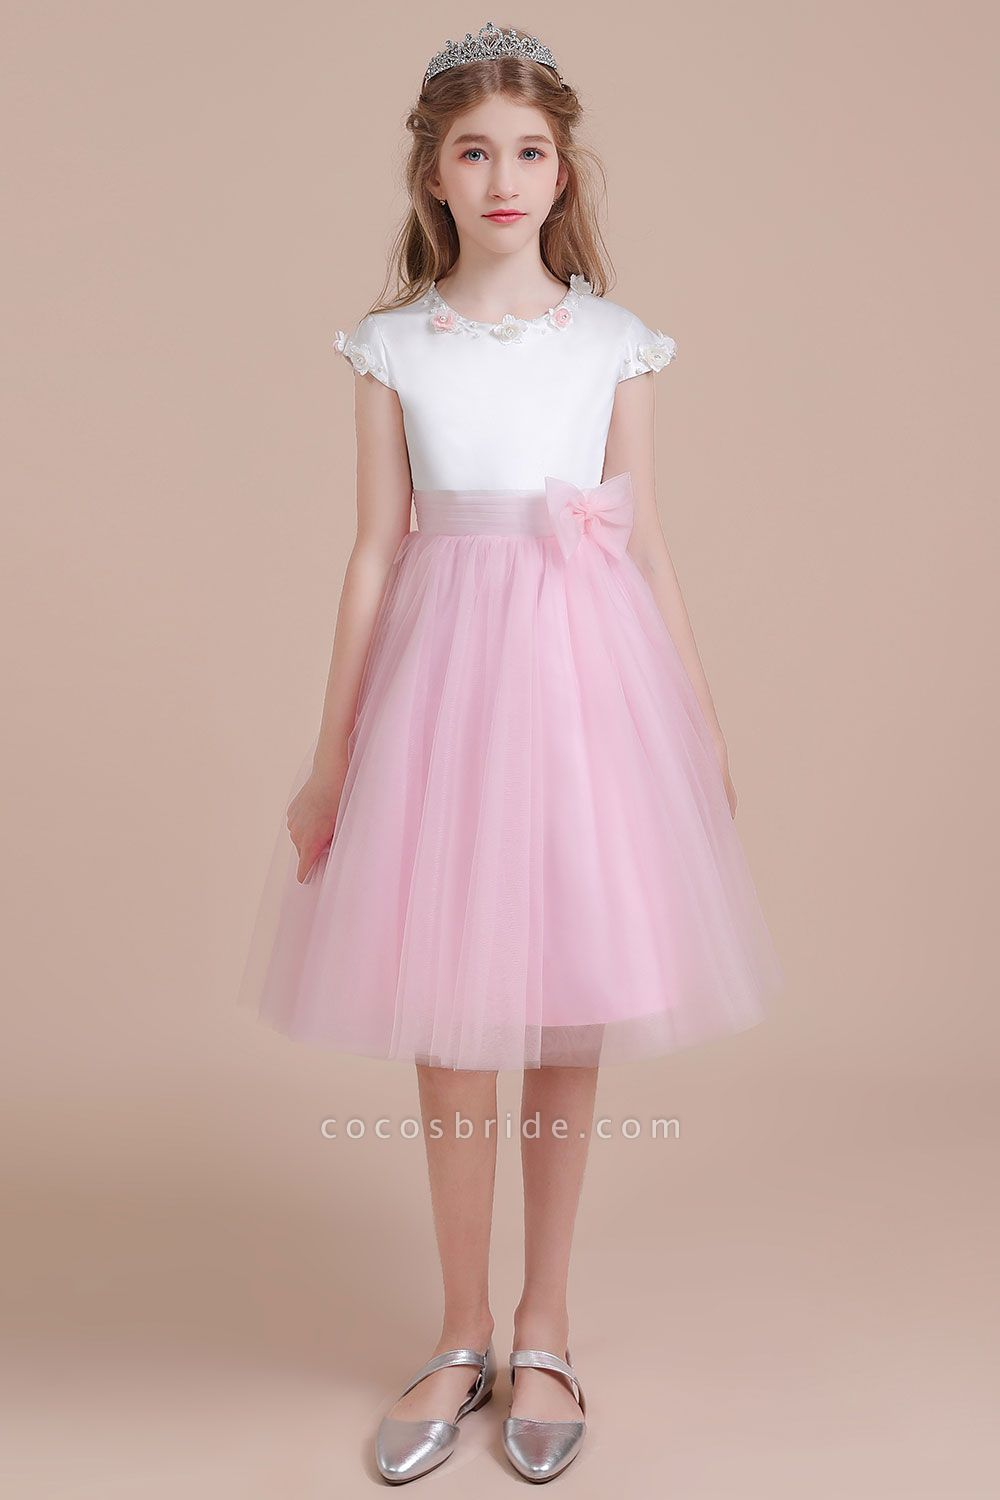 Cap Sleeve Tulle Knee Length Flower Girl Dress